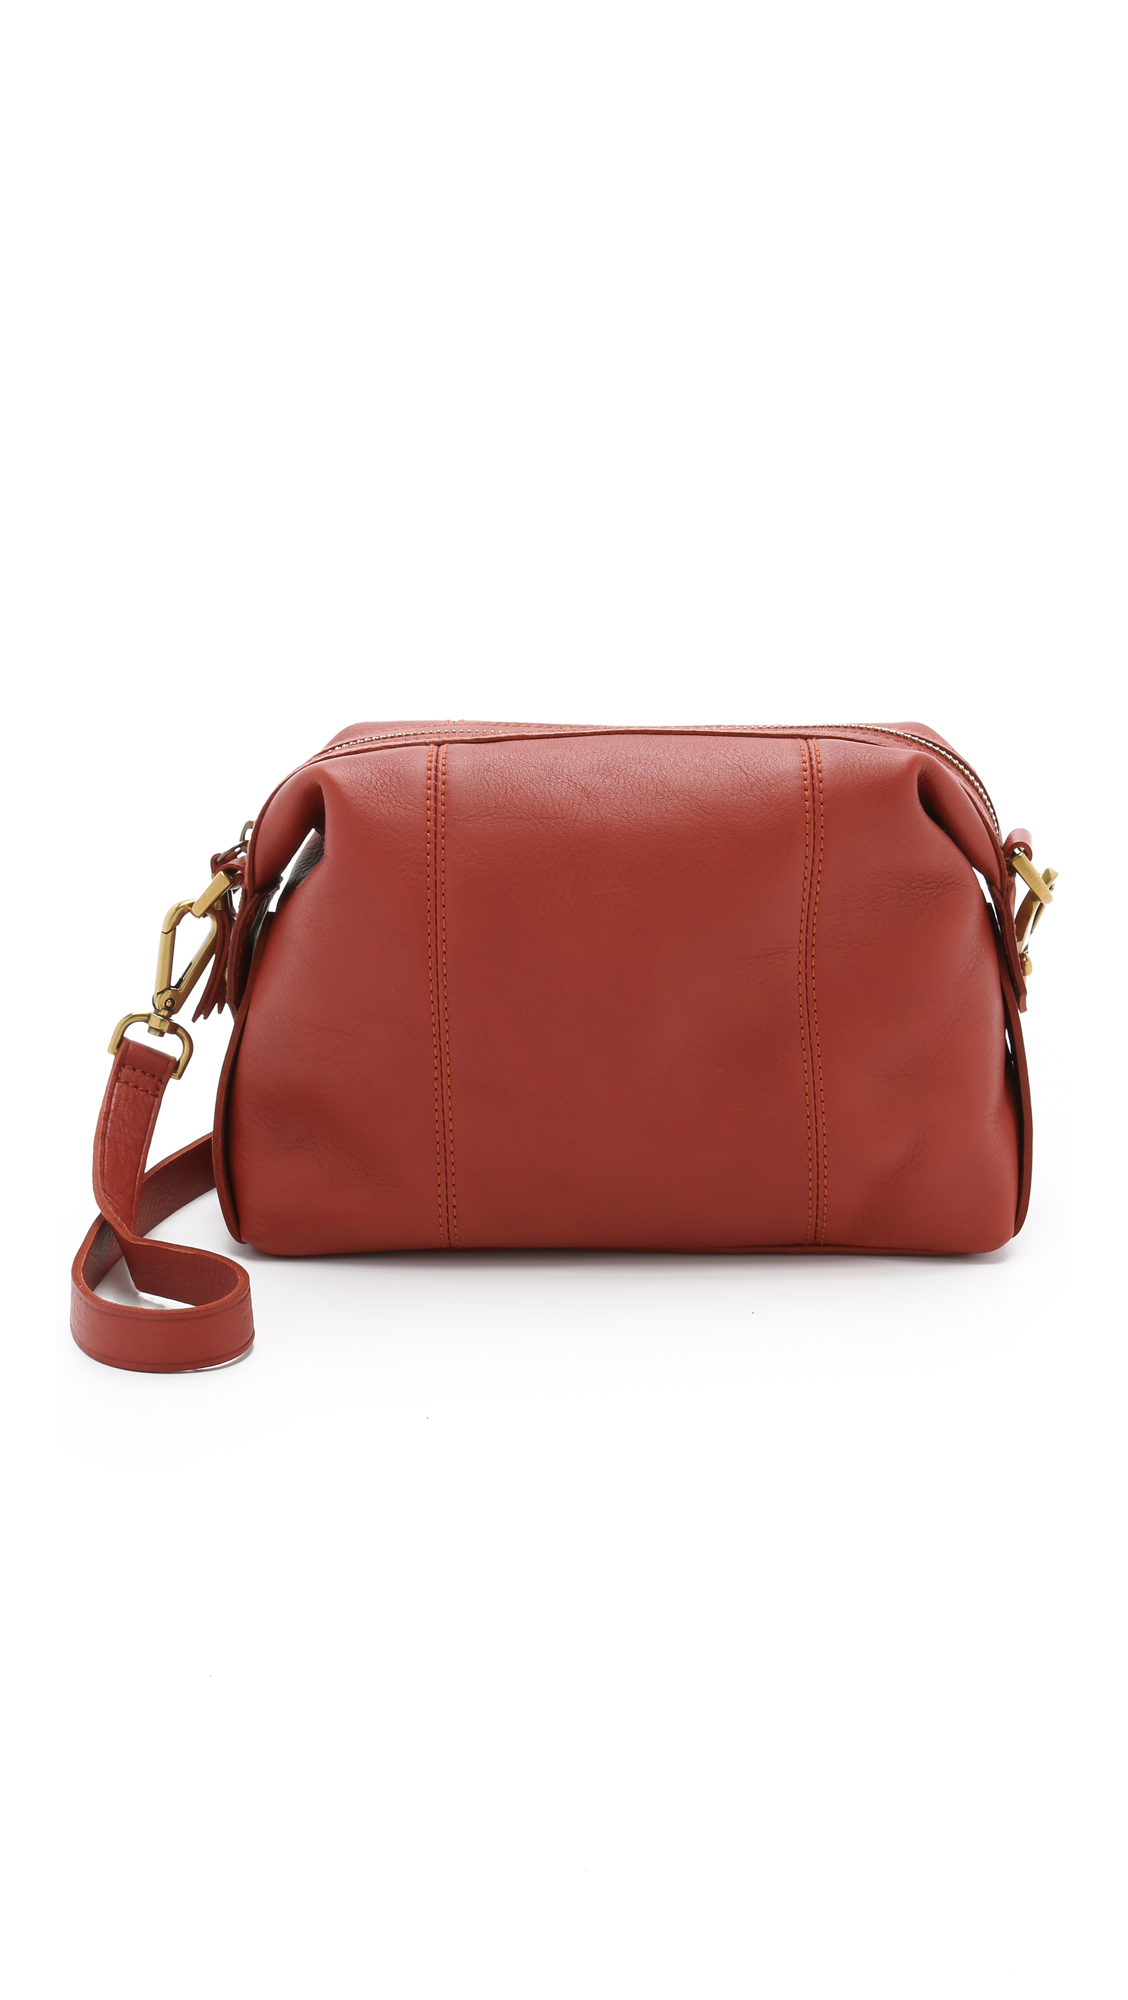 Madewell The Mini Cross Body Glasgow Satchel - Burnished Rust in Brown